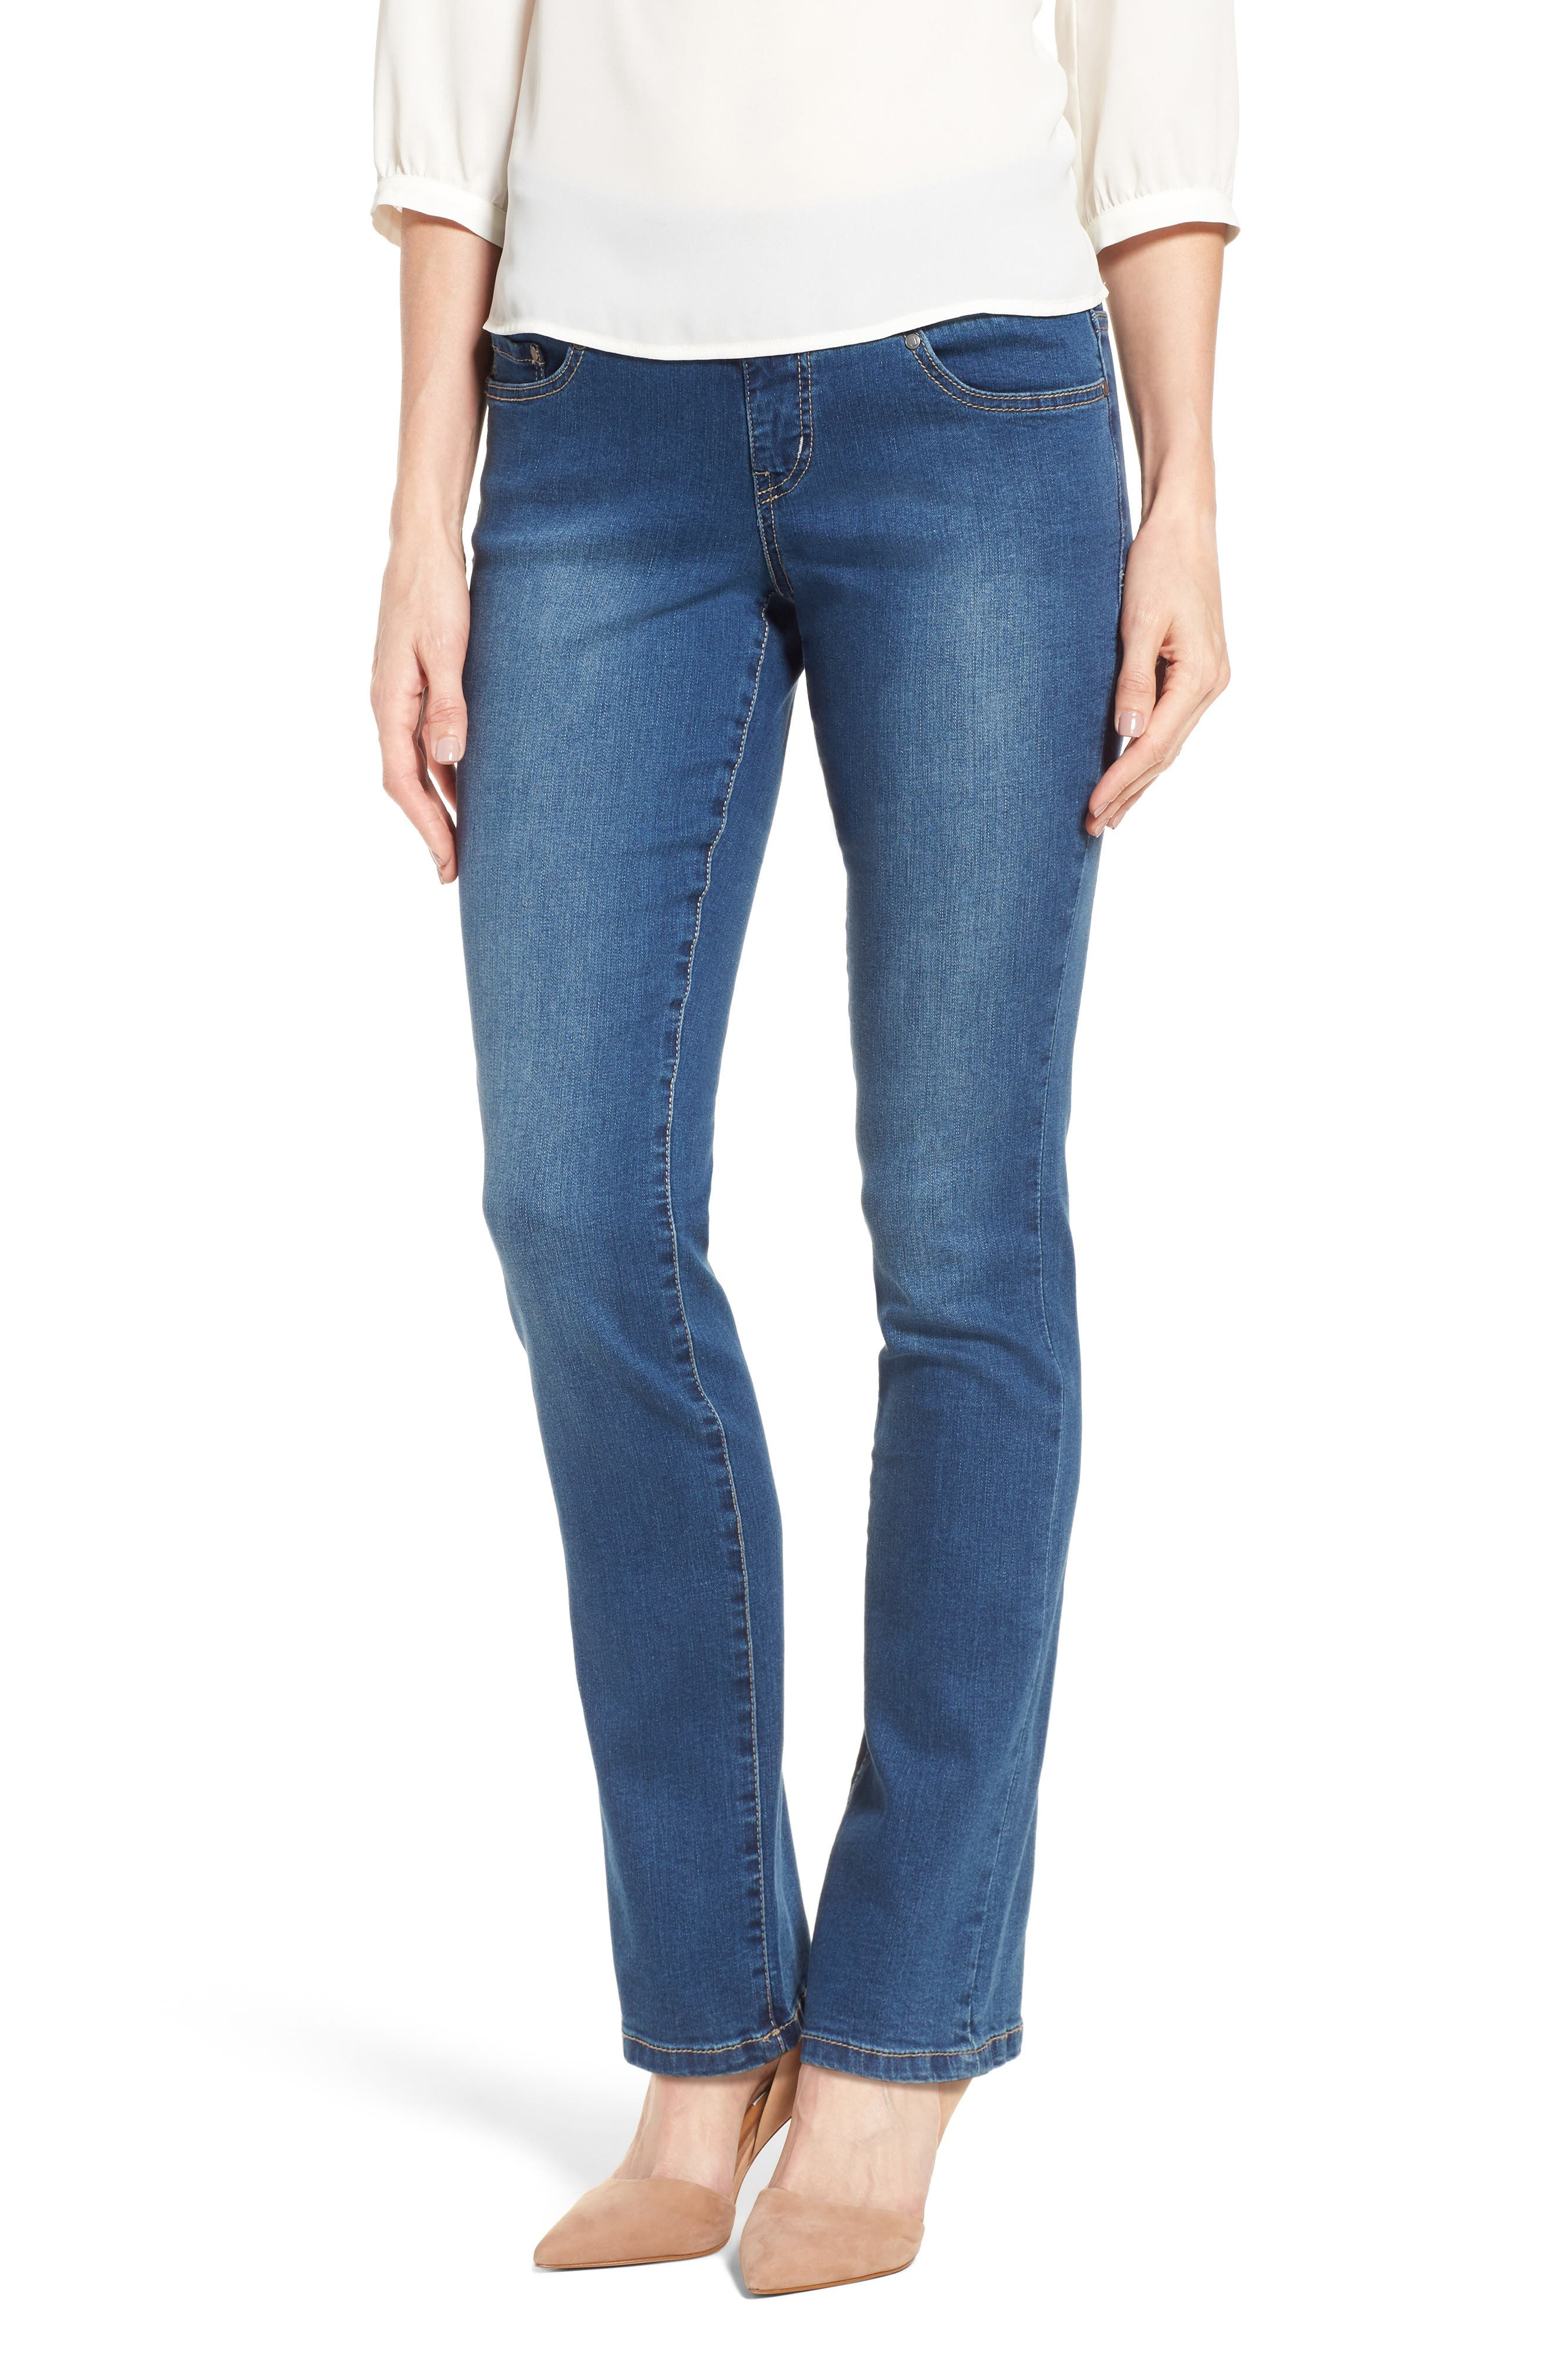 Alternate Image 1 Selected - Jag Jeans Peri Pull-On Straight Leg Jeans